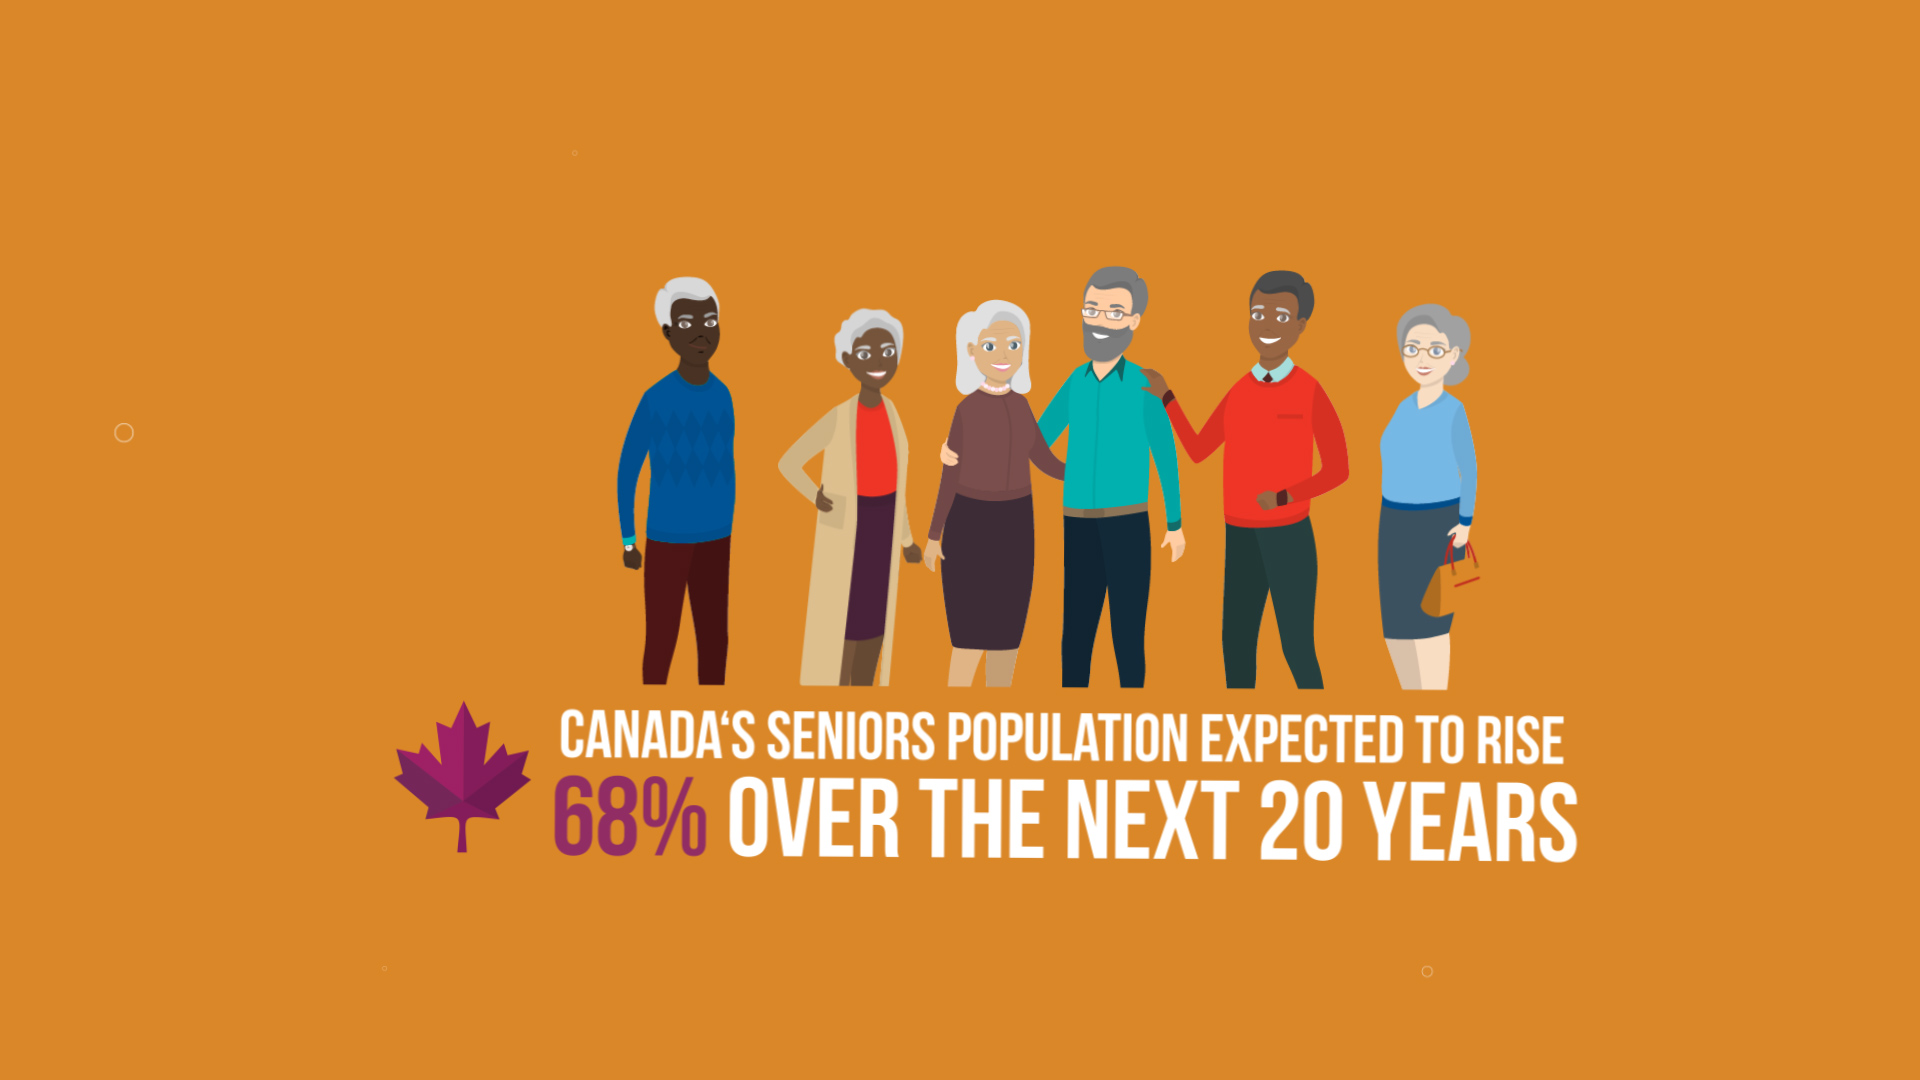 the seniors population is expected to grow 68 percent over the next 20 years